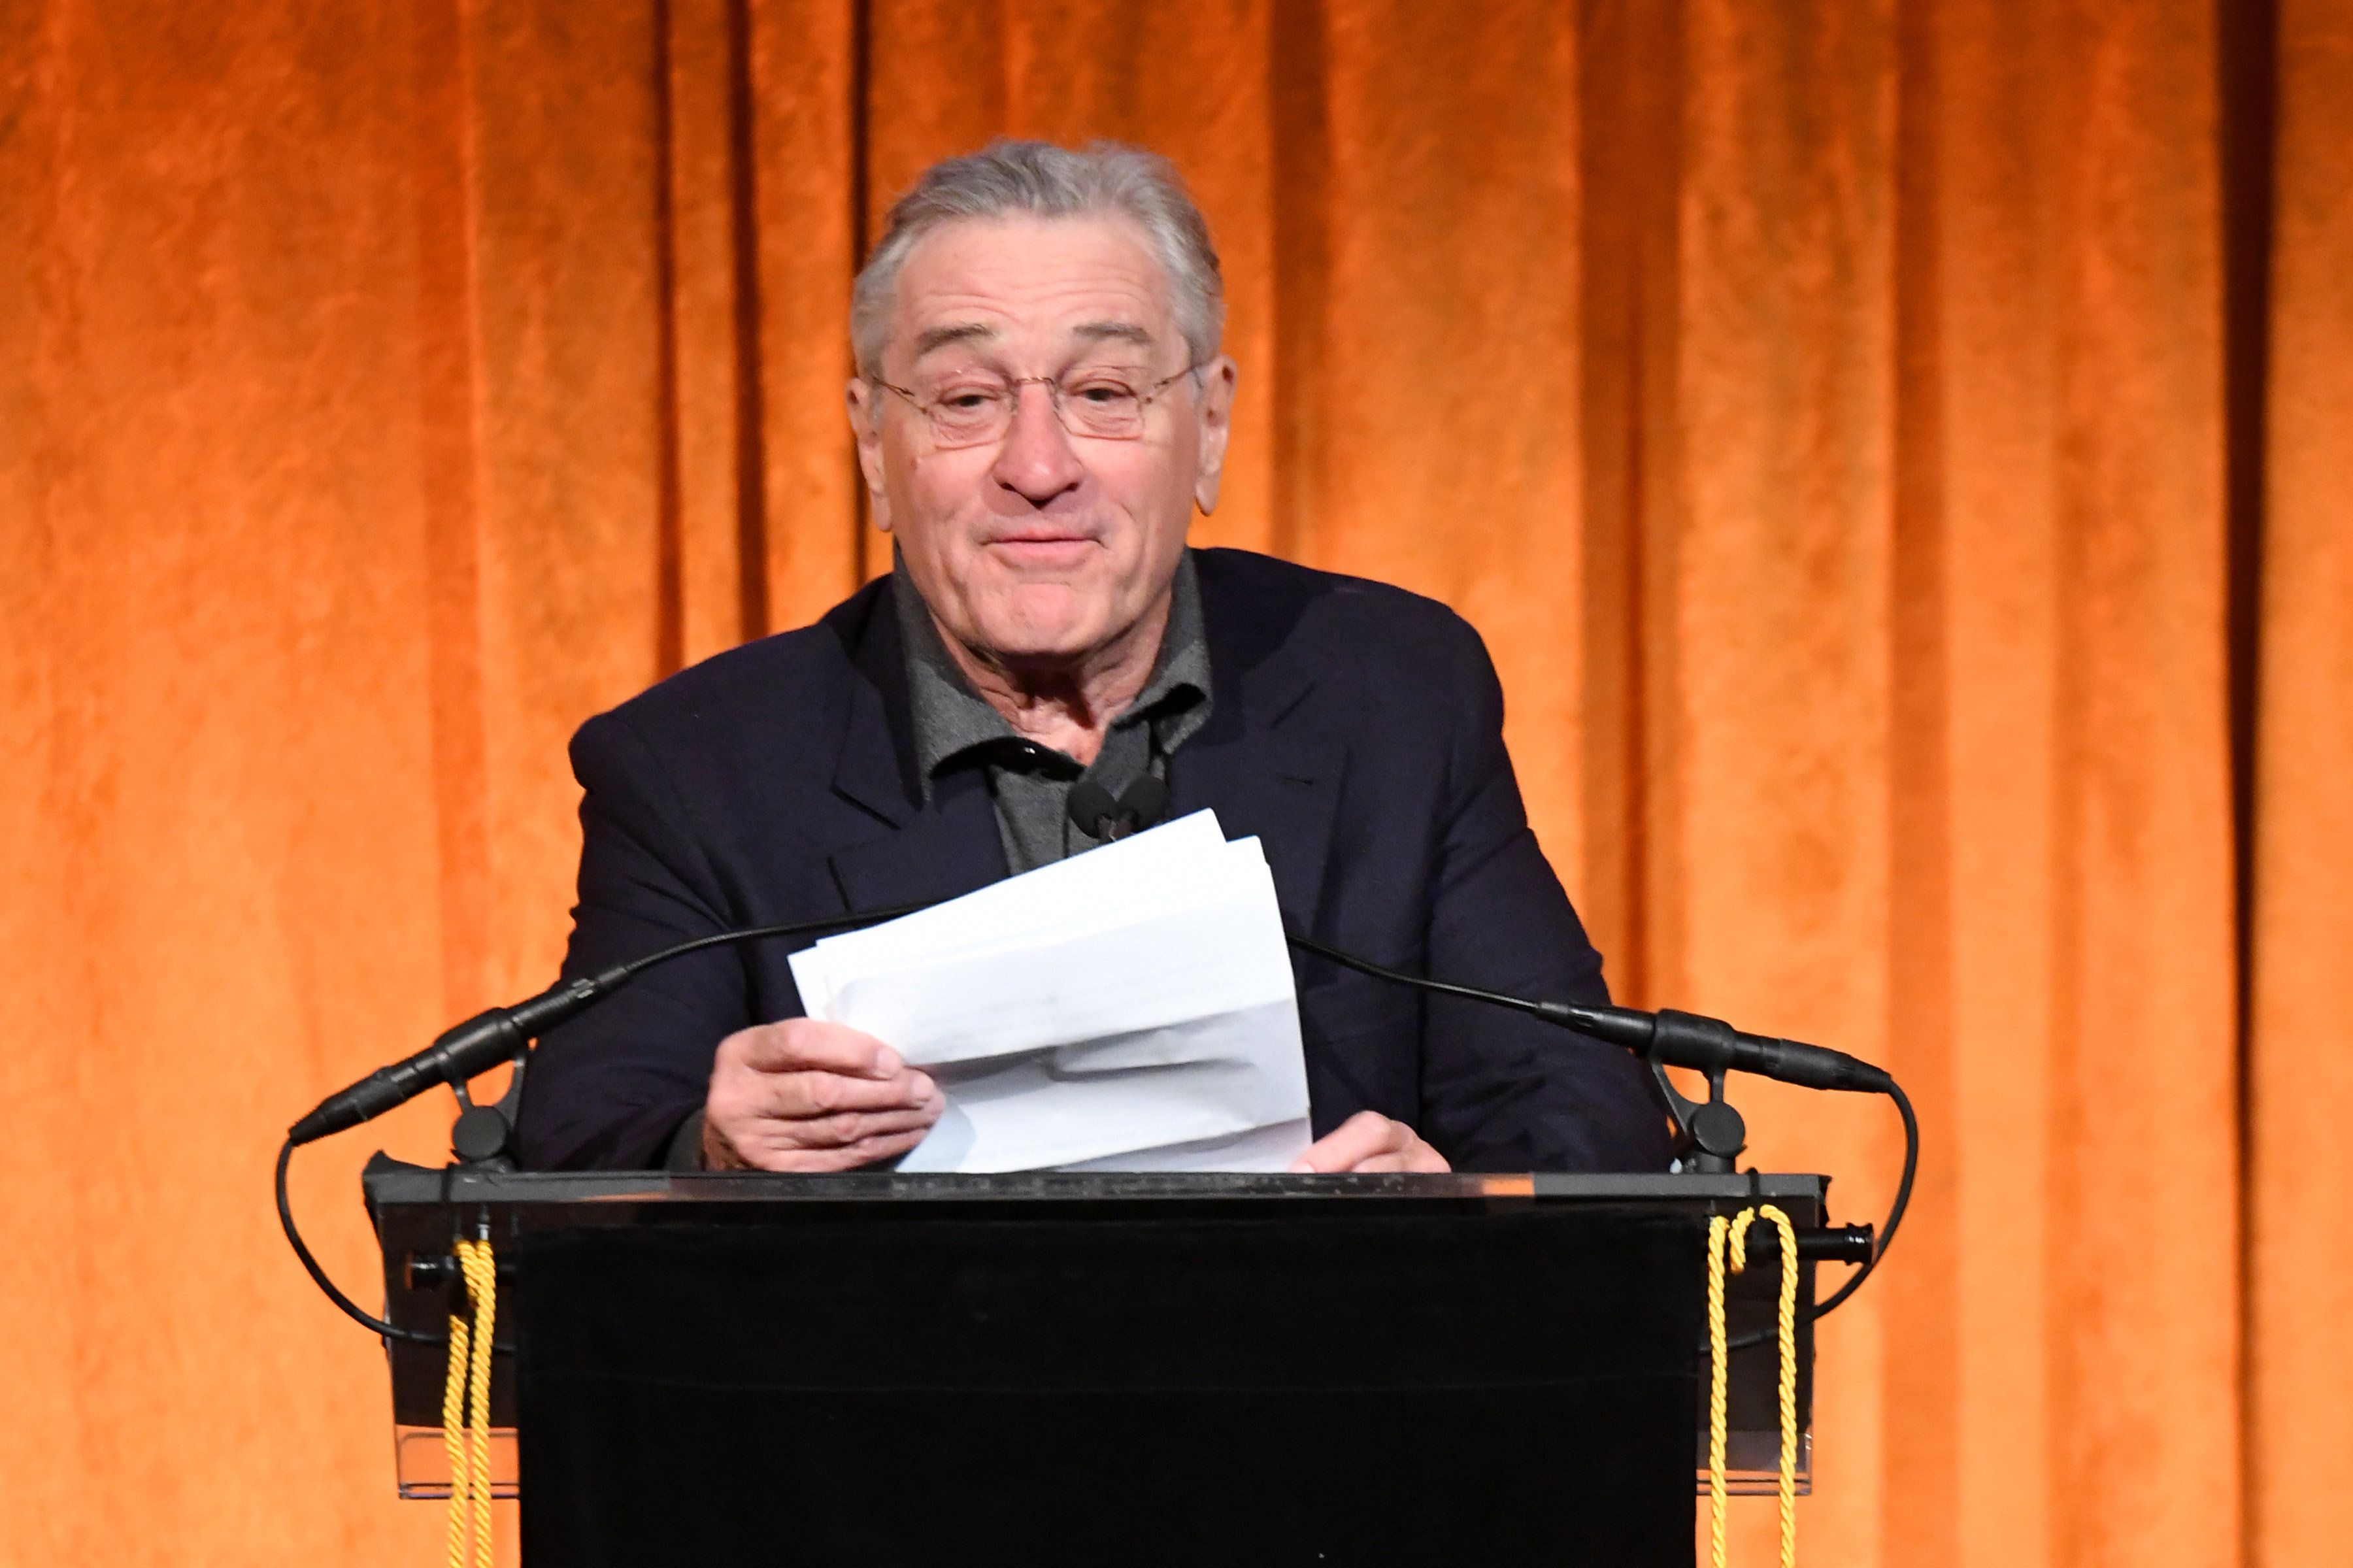 NEW YORK, NY - JANUARY 09:  Robert De Niro speaks onstage during the National Board of Review Annual Awards Gala at Cipriani 42nd Street on January 9, 2018 in New York City.  (Photo by Dimitrios Kambouris/Getty Images for National Board of Review)